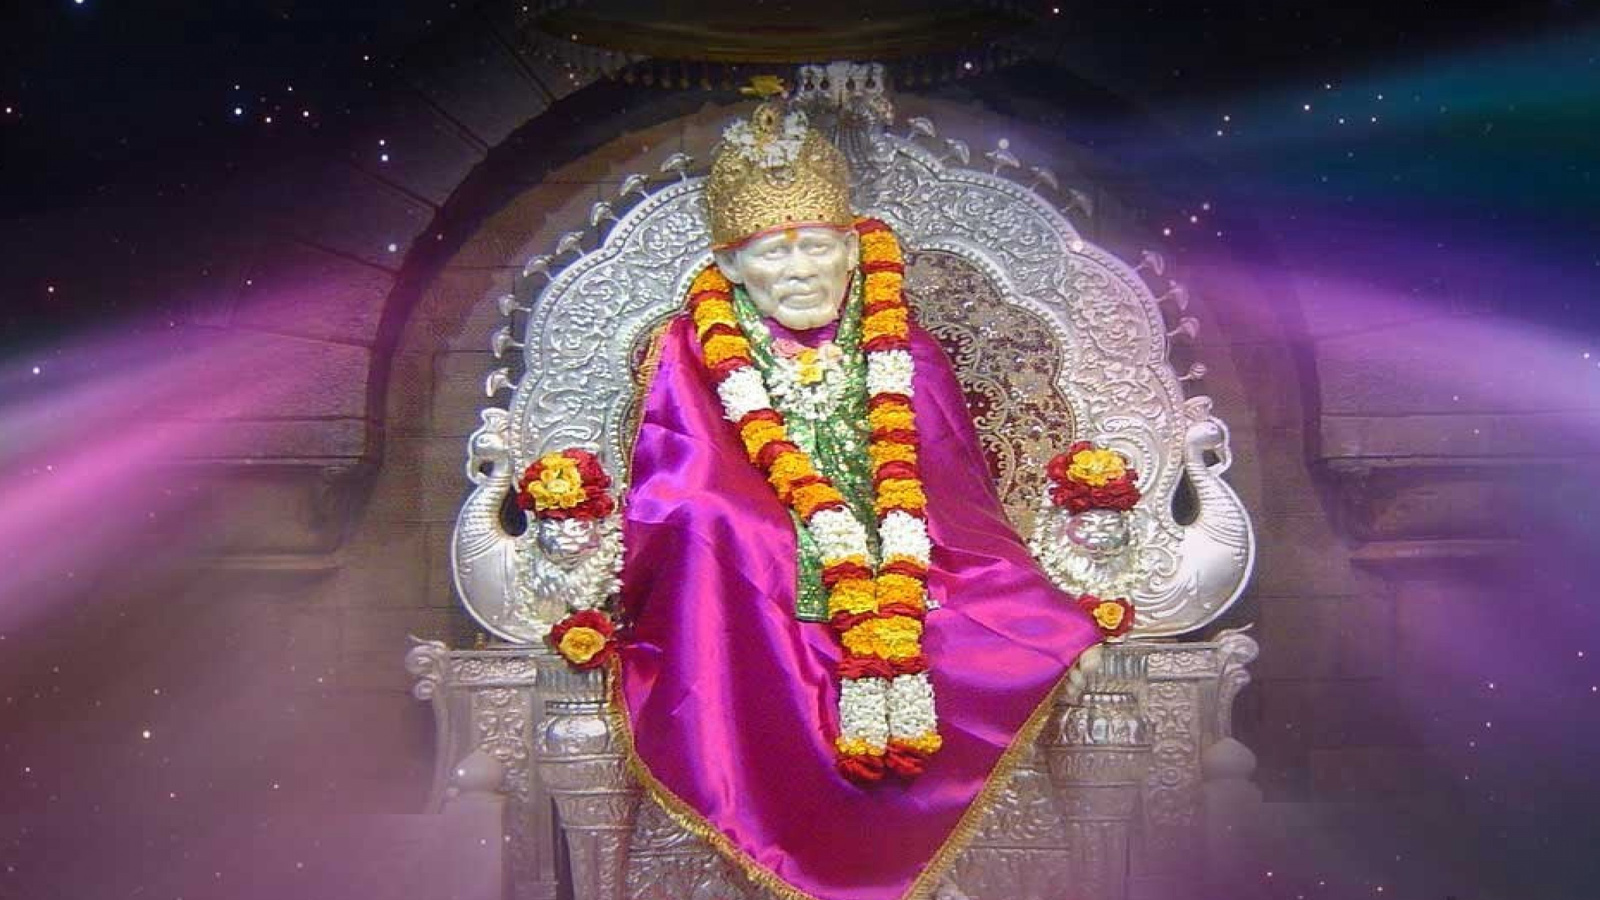 New 55 Hd Sai Baba Images Photos Wallpapers For Mobile Desktop